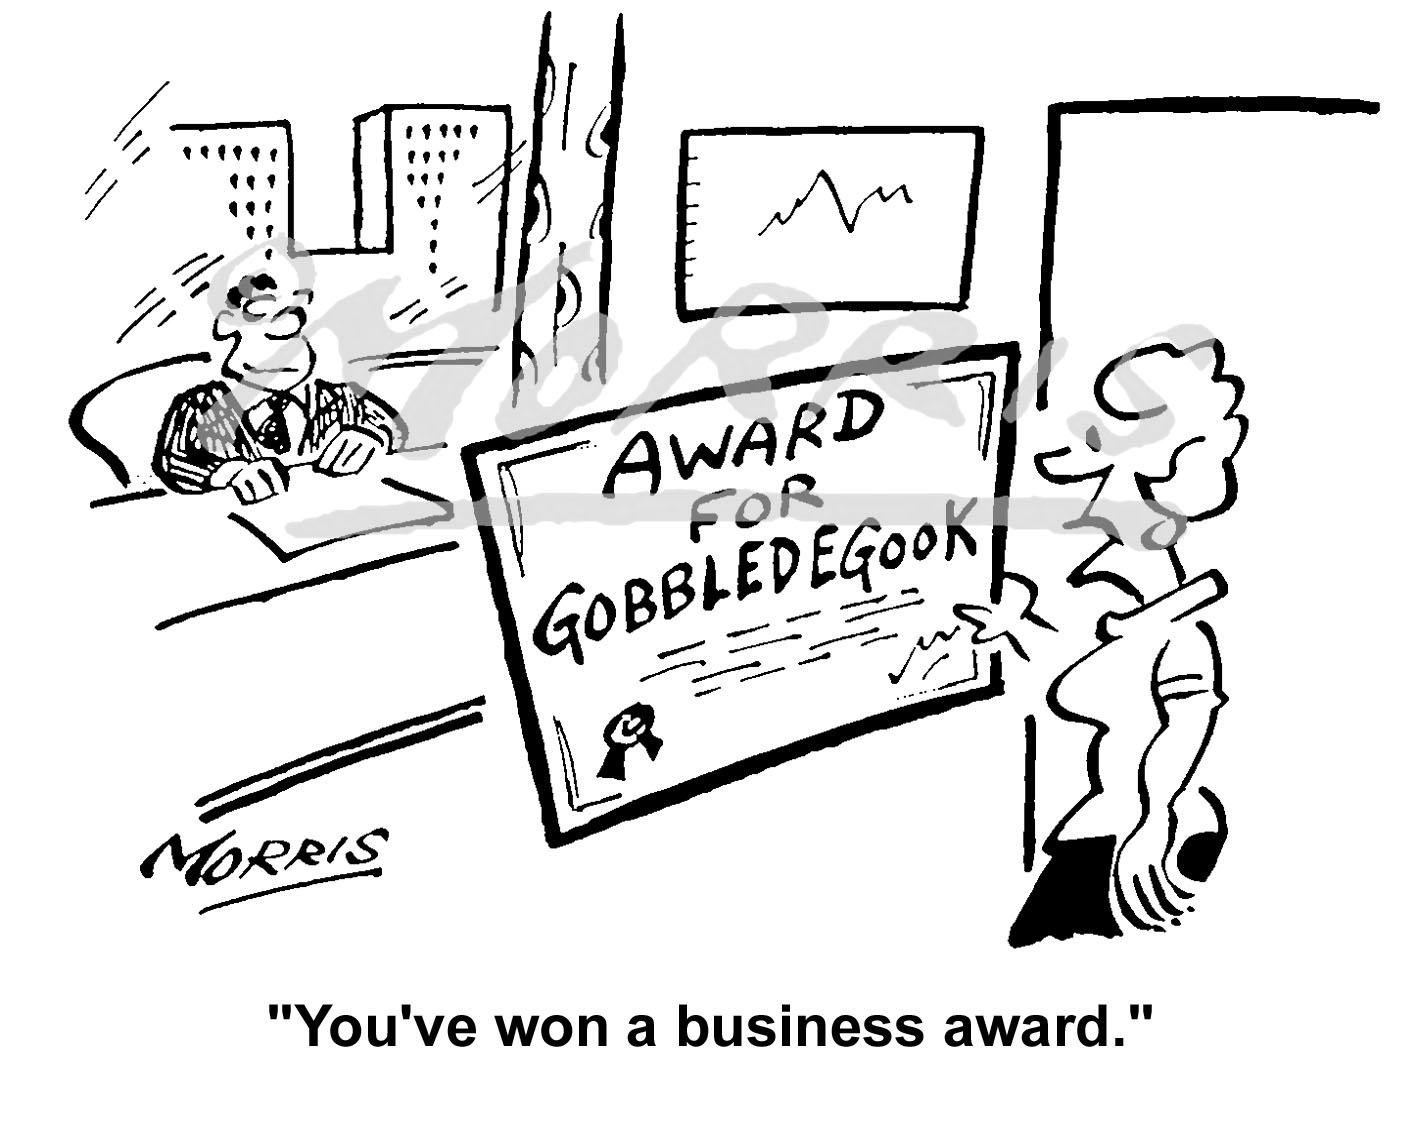 Management cartoon, Business award cartoon, – Ref: 3616bw